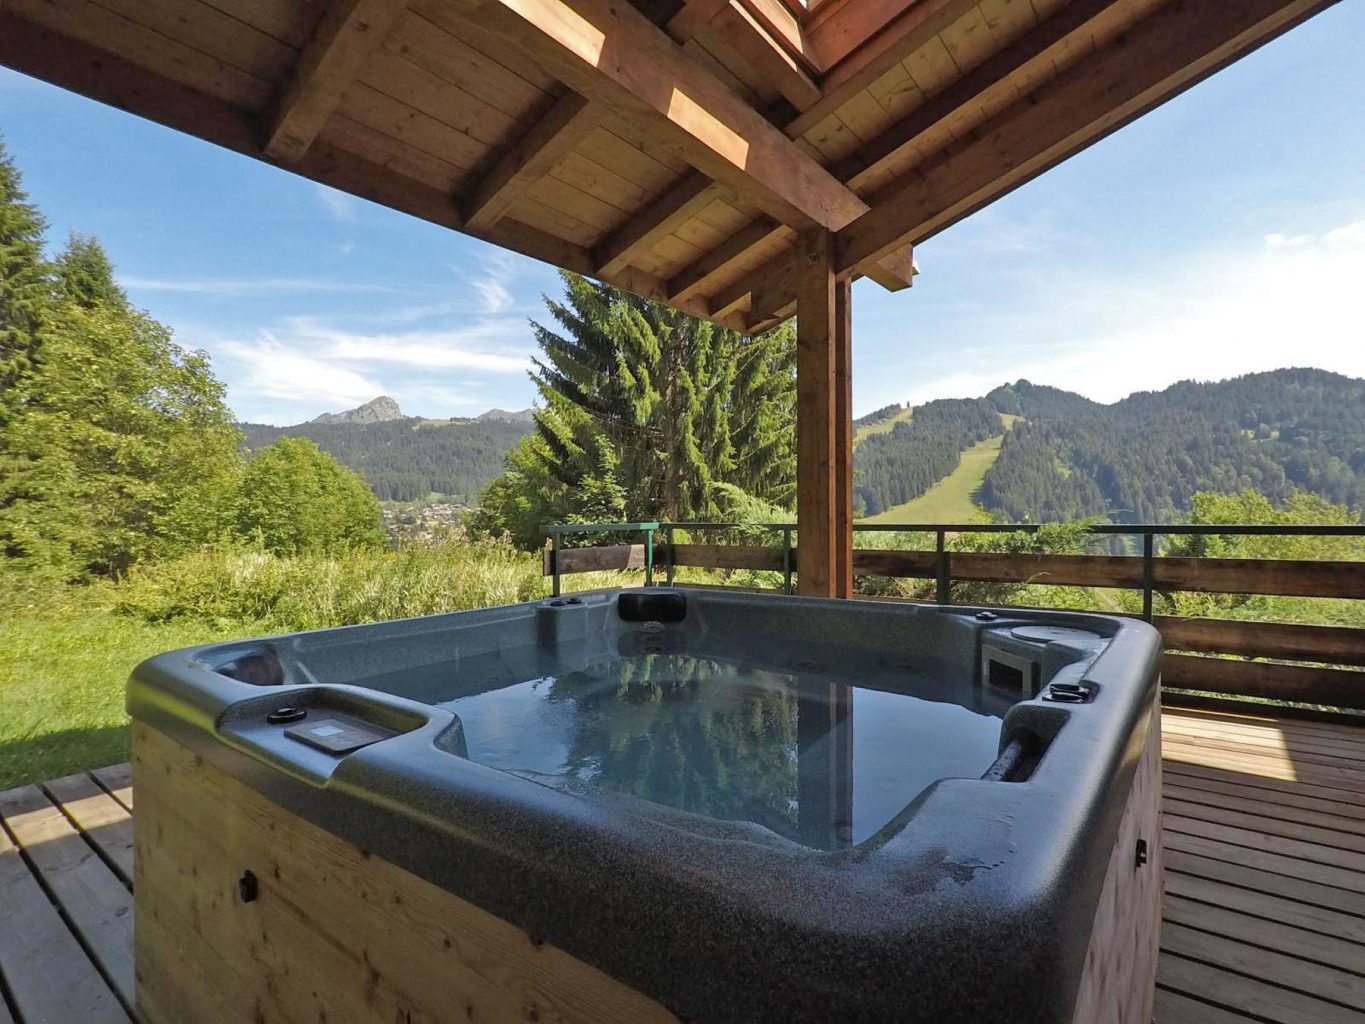 Villaz 737 Chalet Hot Tub